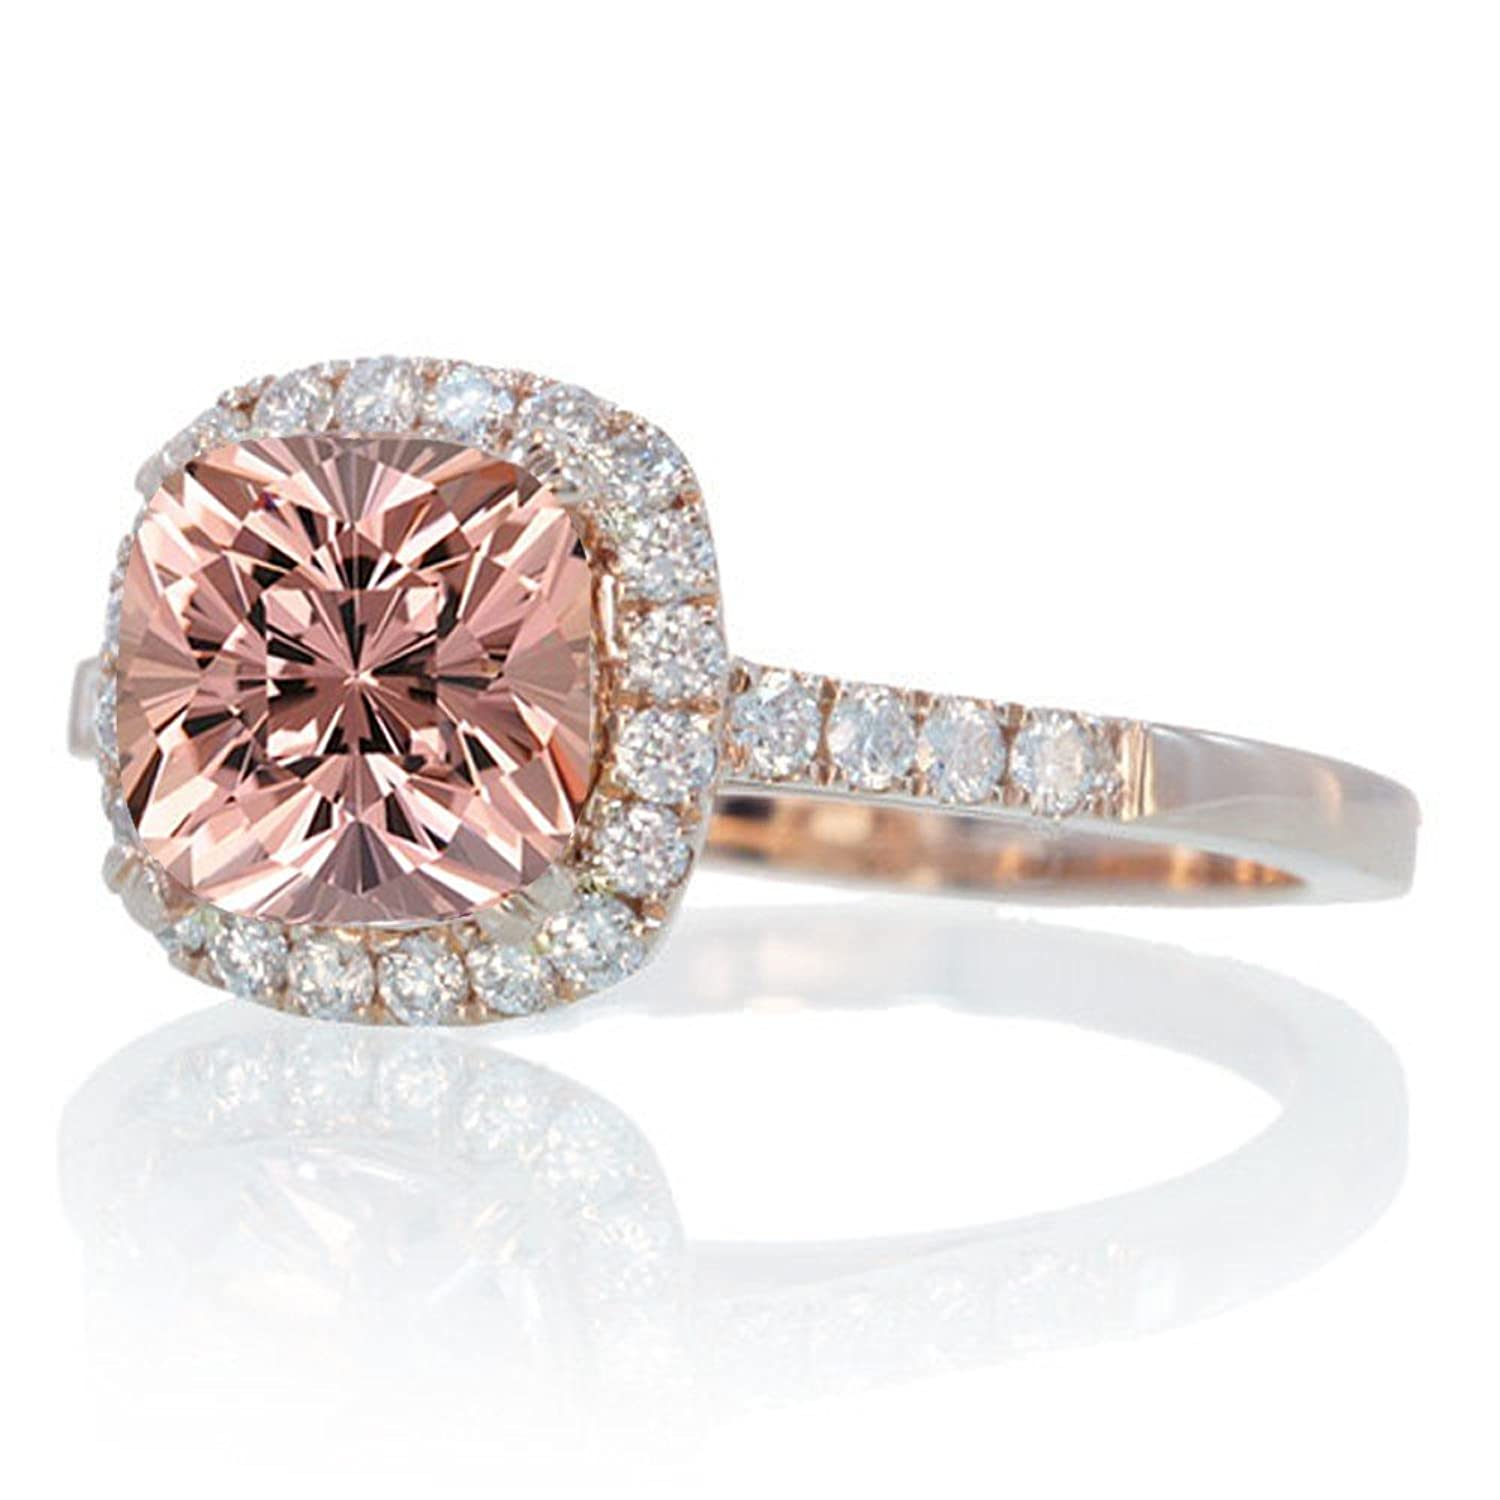 15 Carat Perfect Cushion Morganite And Diamond Engagement Ring On 10k Rose  Gold  Amazon